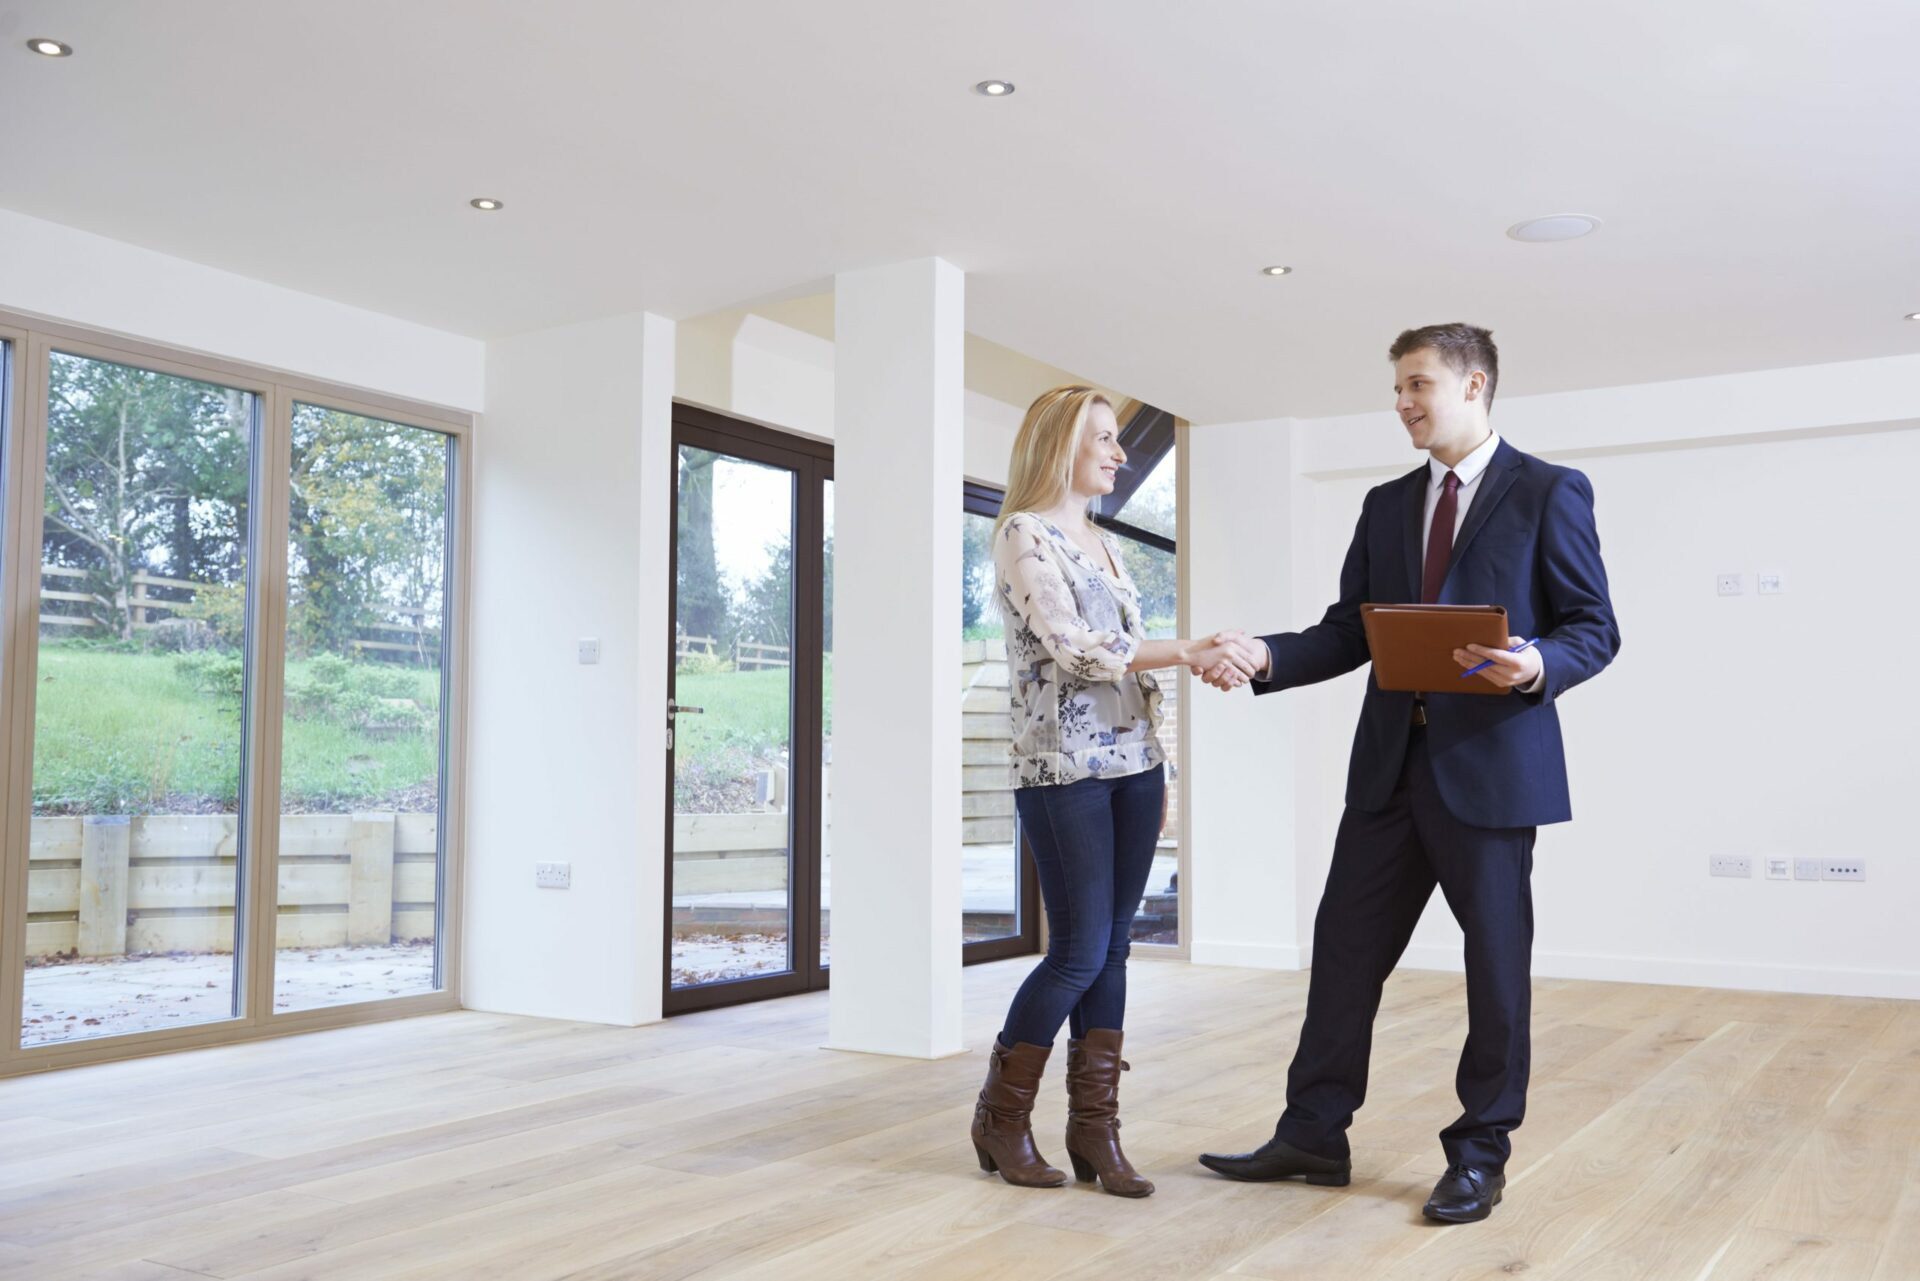 Mortgage/Conveyancing, Personal Clients - Saracens Solicitors